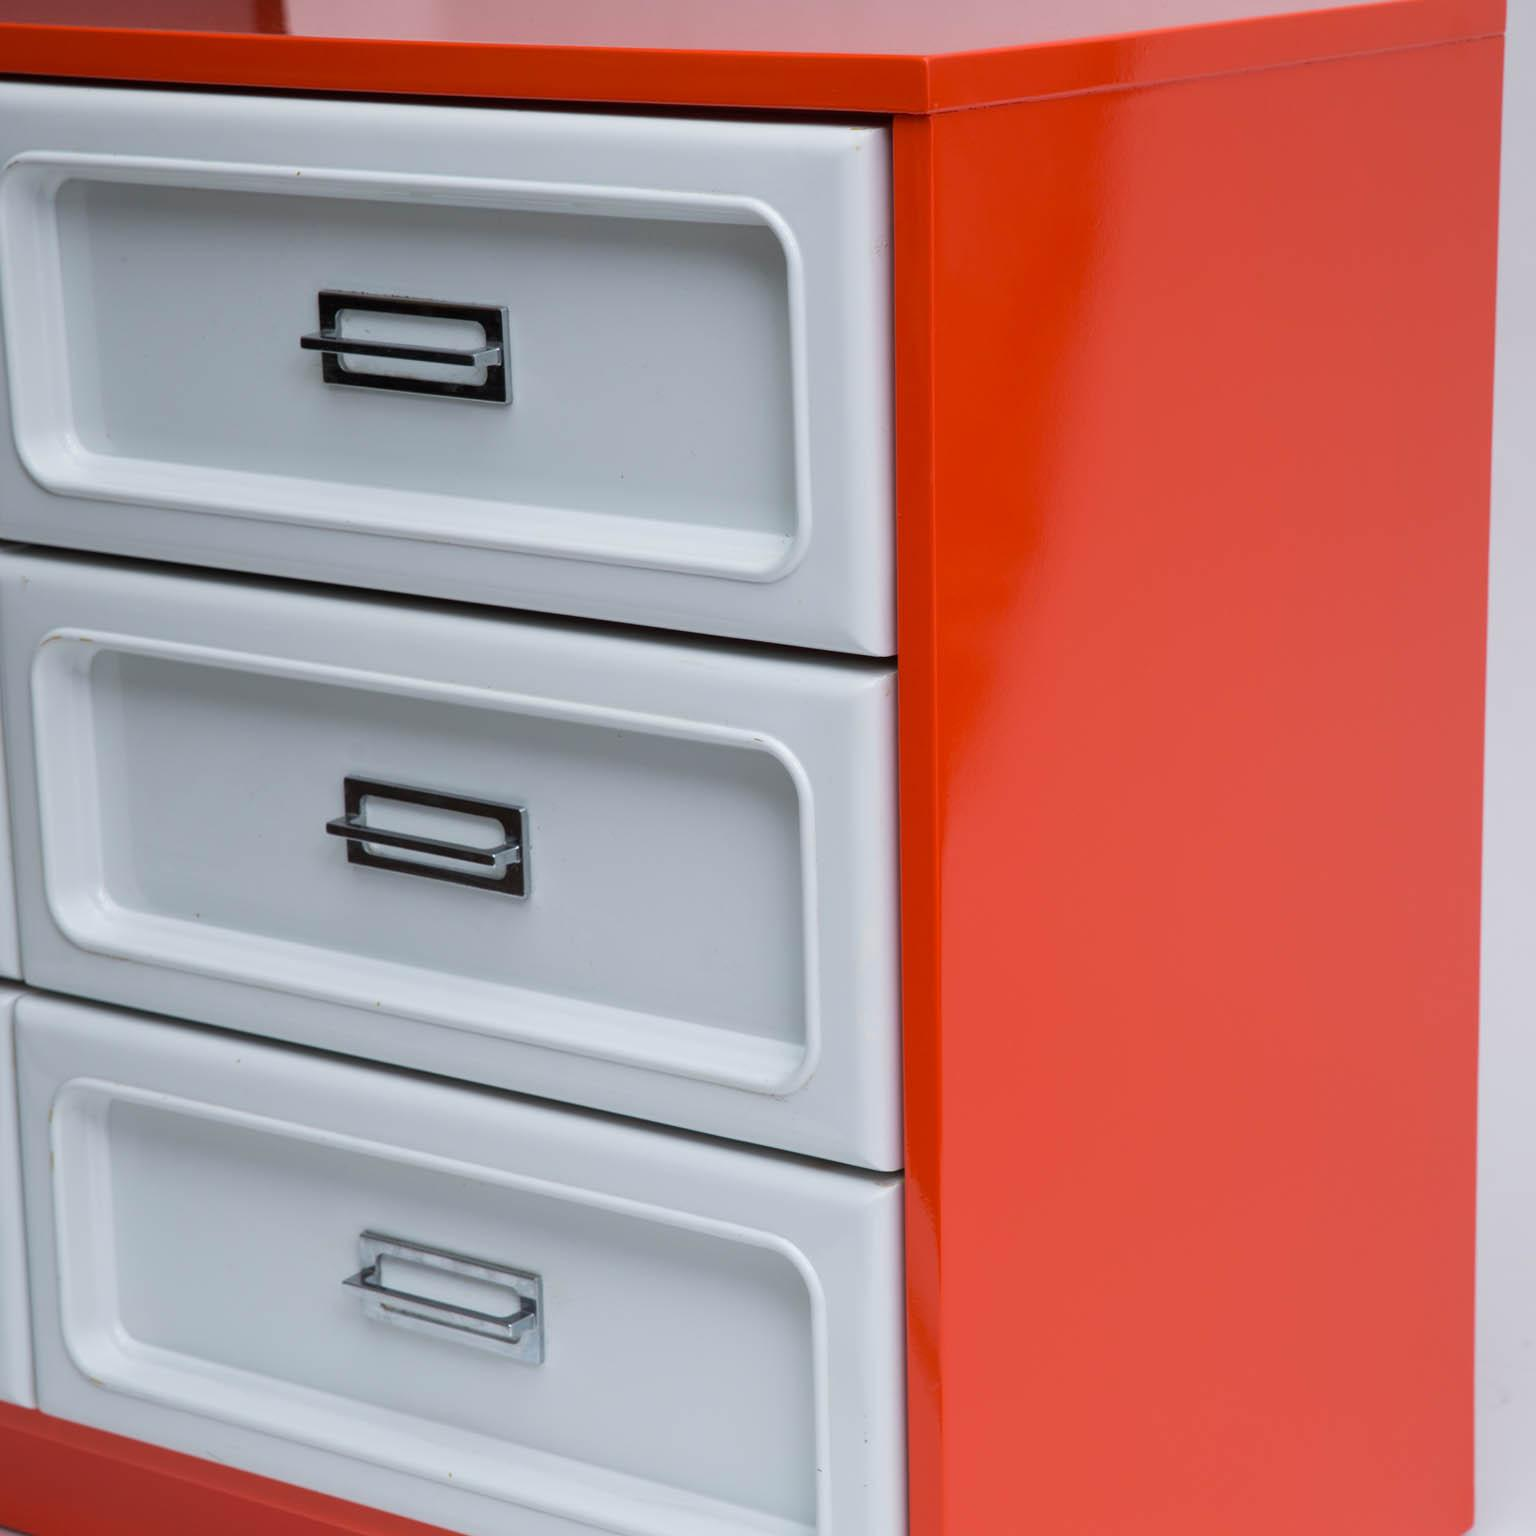 Basset Plastic Front Dresser In The Manner Of Raymond Loewy   Image 4 Of 7